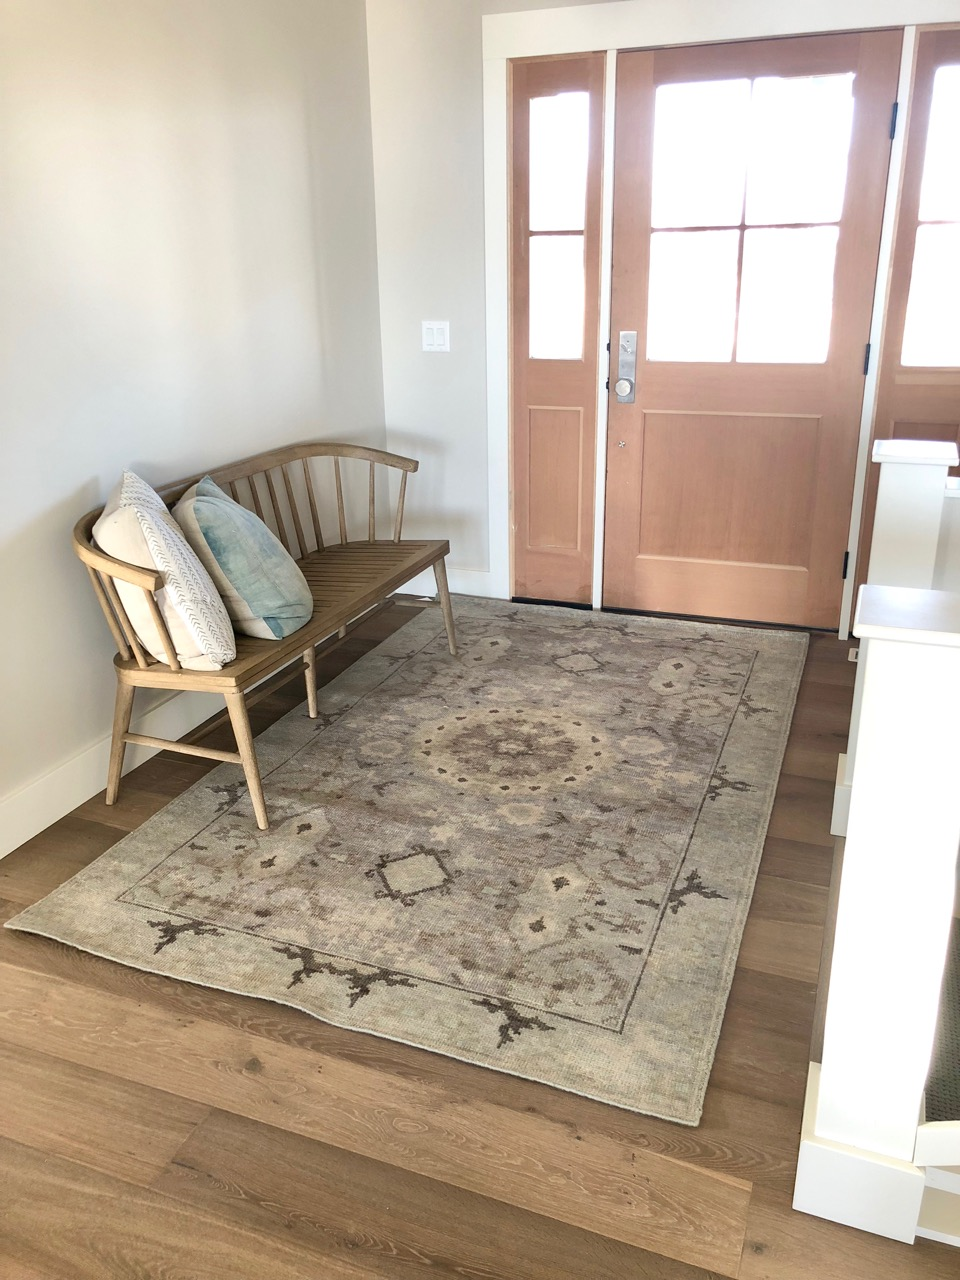 For the entry, a beautiful hand-knotted wool rug that is as durable as it is gorgeous!  A bit of color without distracting from the natural beauty of the wood floors and trim.